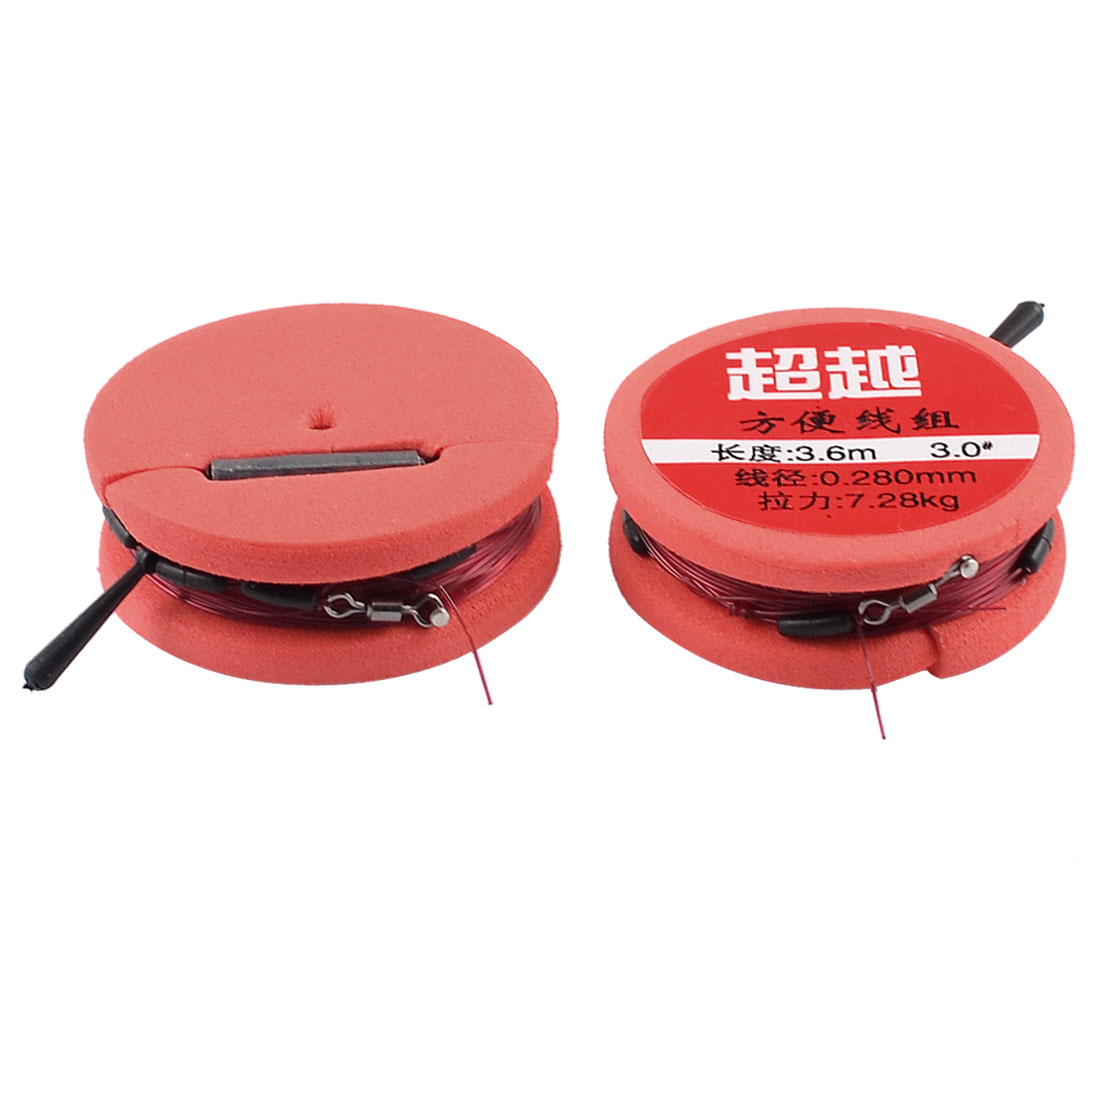 2 Pcs Watermelon Red Foam Roller Spool 7.28Kg 0.280mm Fishing Thread Line 3.6 Meter